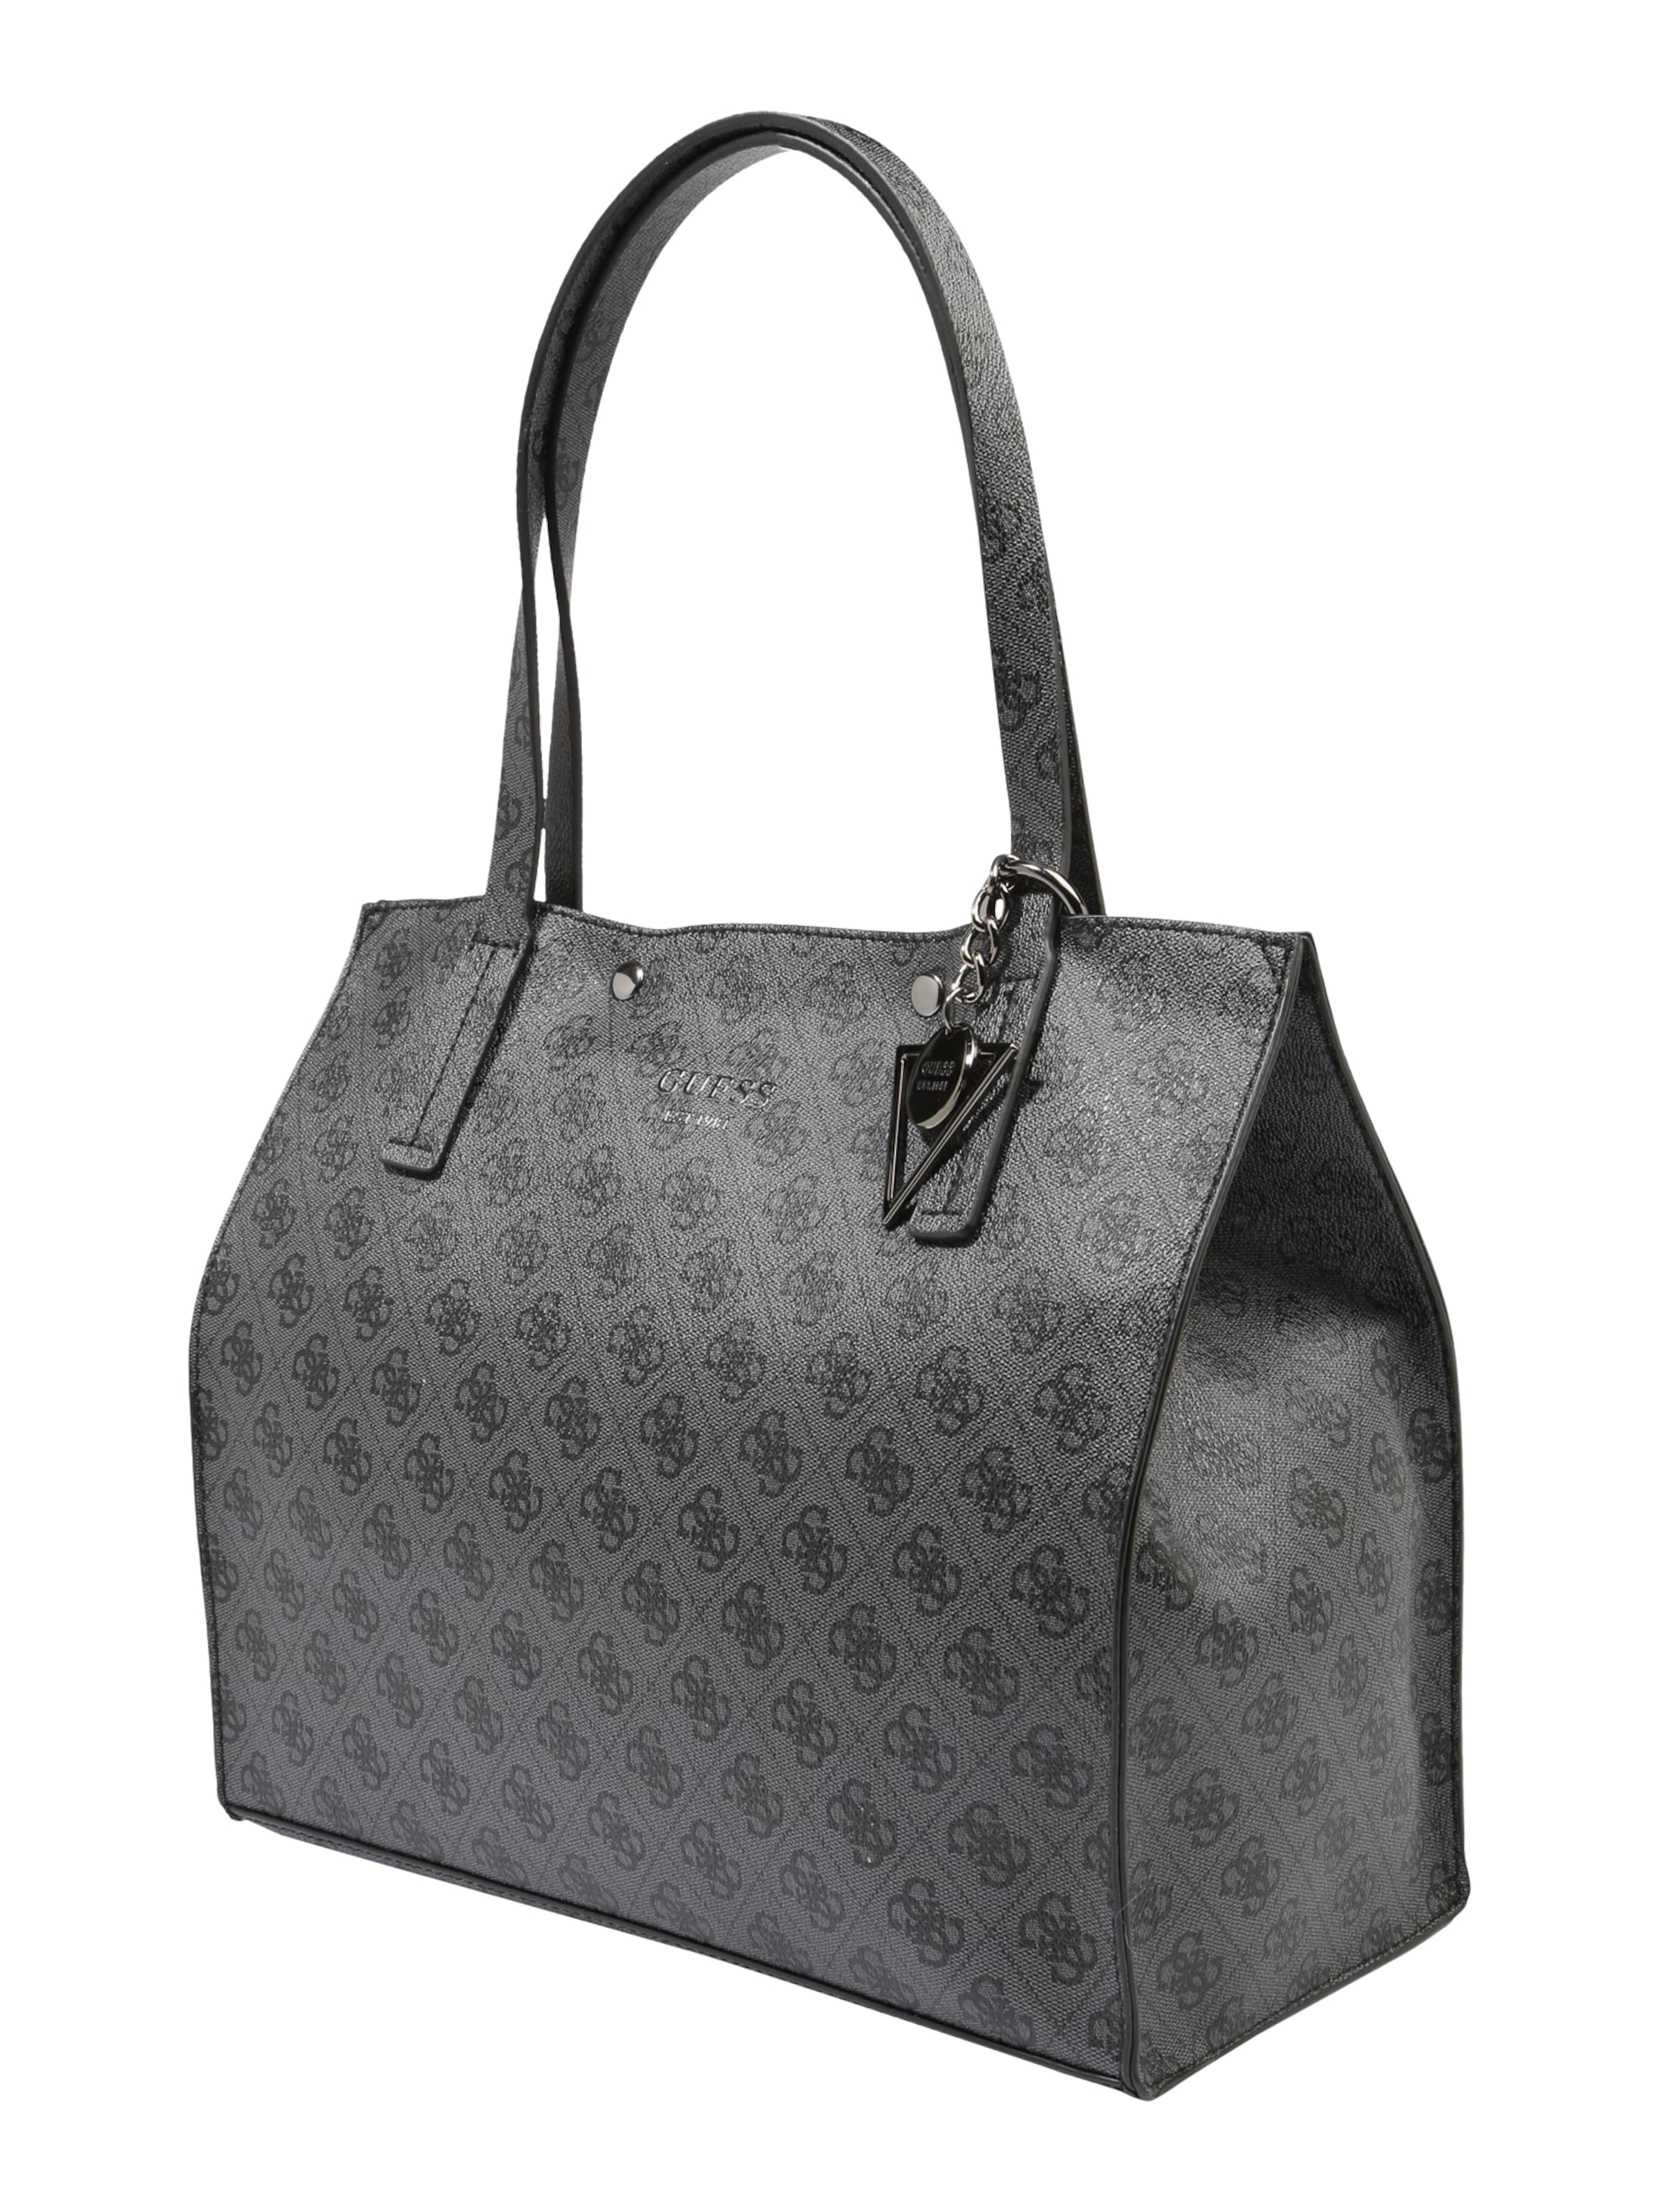 CARRYALL' 'KINLEY GUESS GUESS 'KINLEY 'KINLEY CARRYALL' Shopper Shopper Shopper GUESS WZRRaz